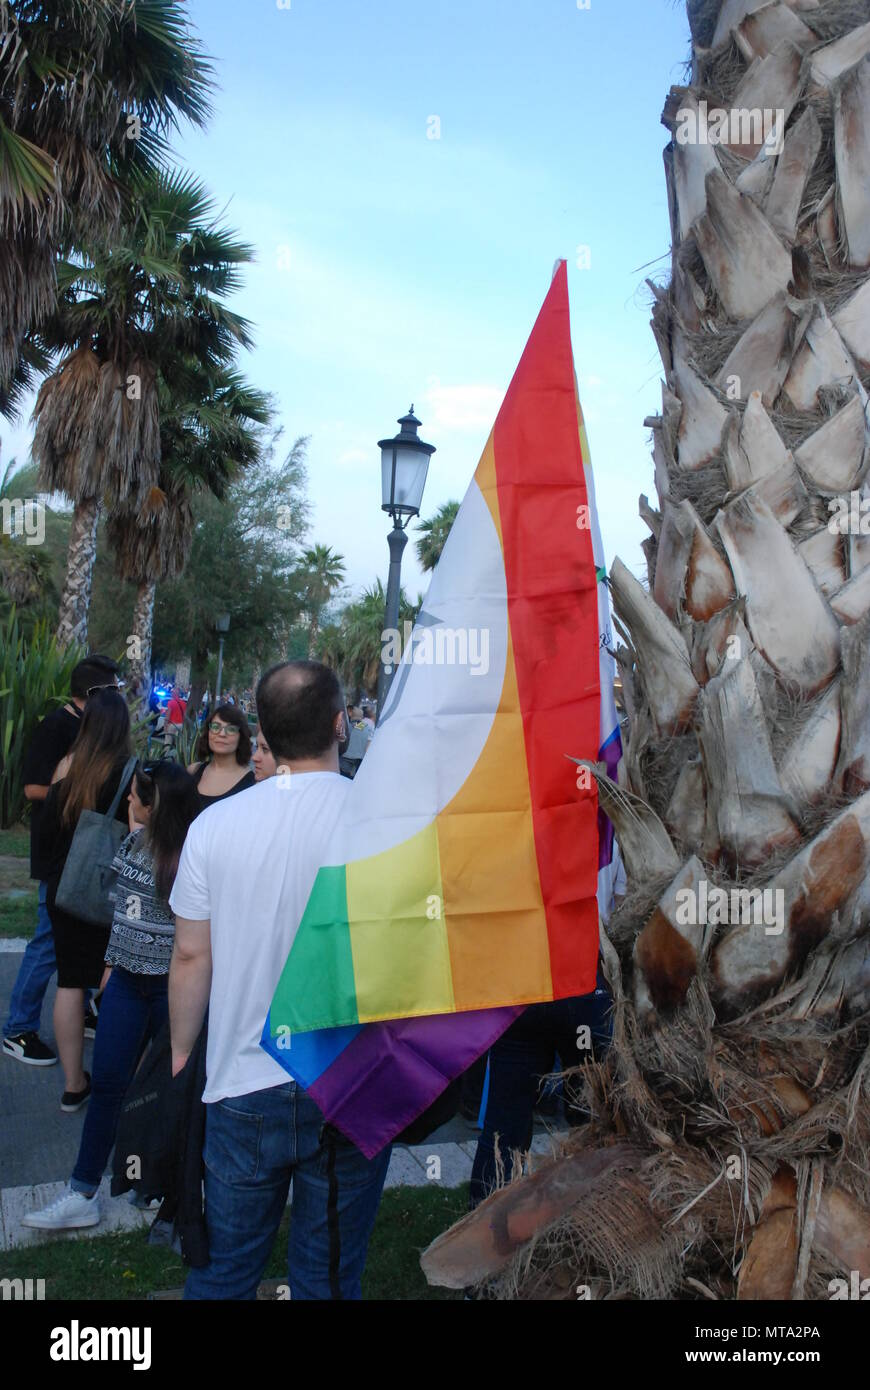 Salerno, South Italy, May 26, 2018, Gay Pride event : Gay Pride Salerno. - Stock Image